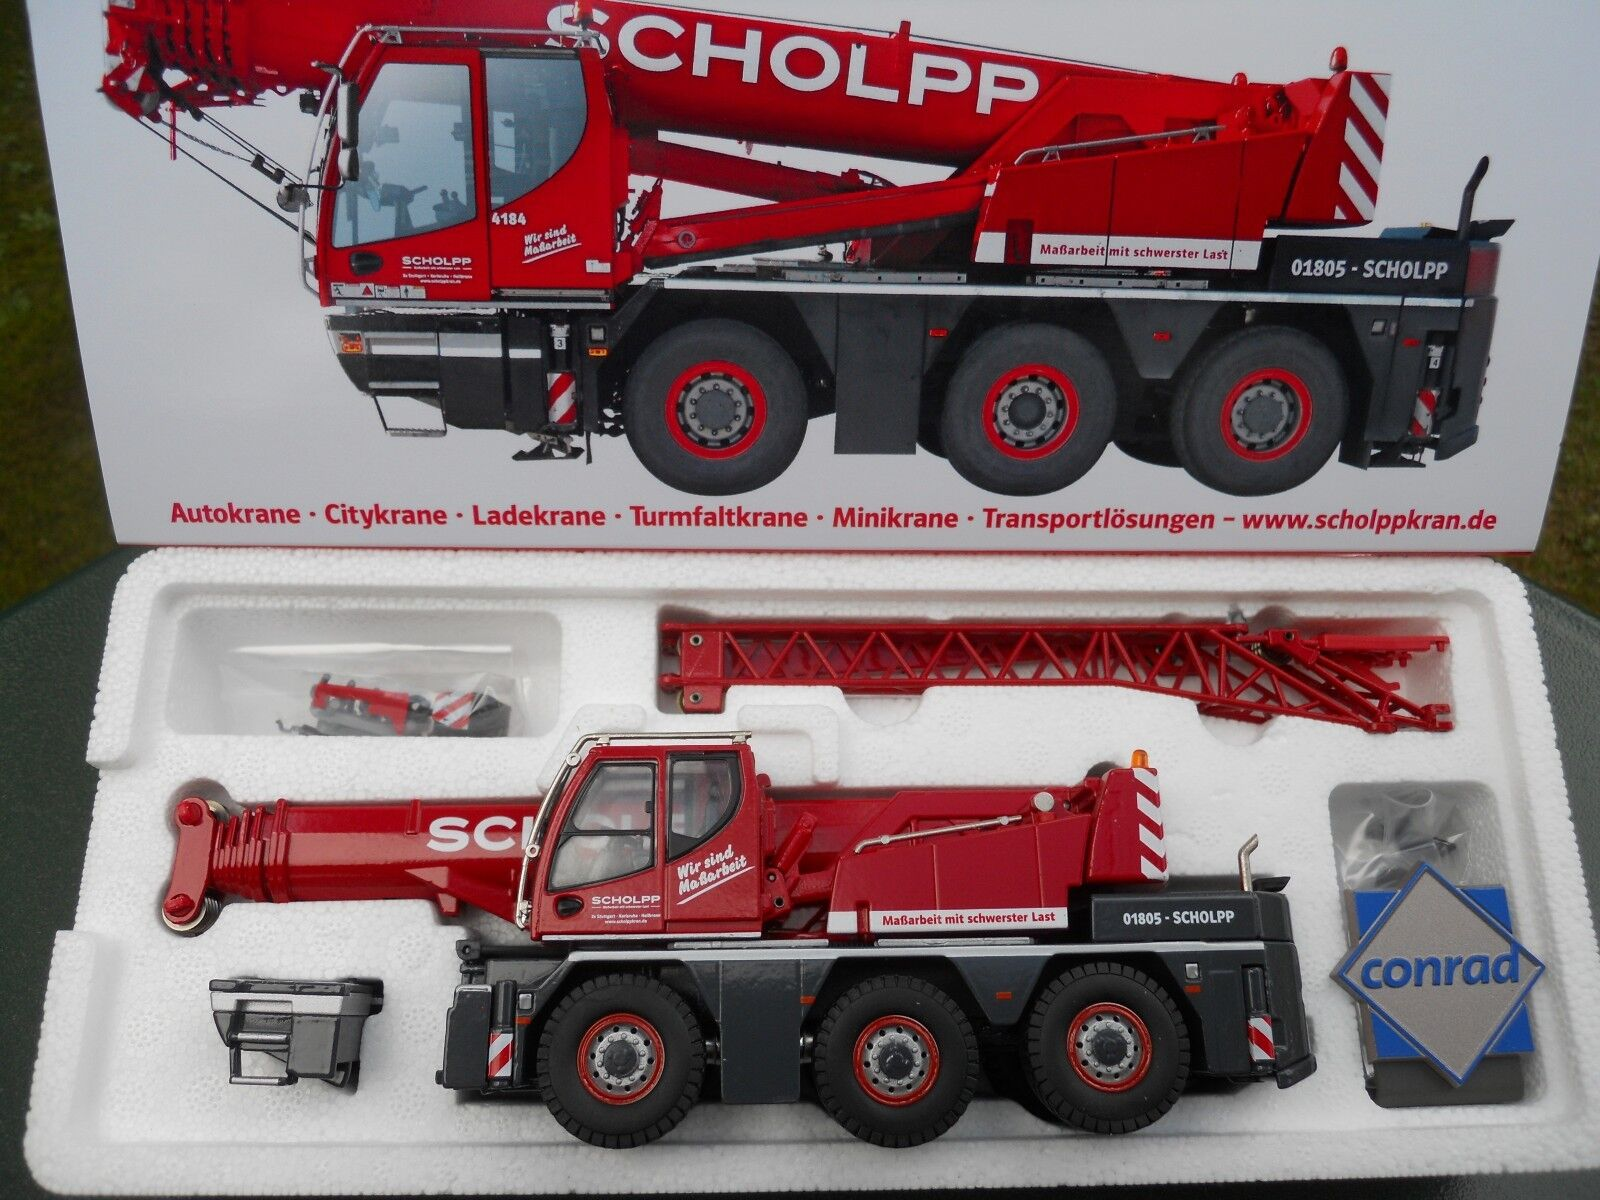 CONRAD 2109/10 LIEBHERR LTC 1045 -3.1   SCHOLPP    HORS COMMERCE MINT IN BOX